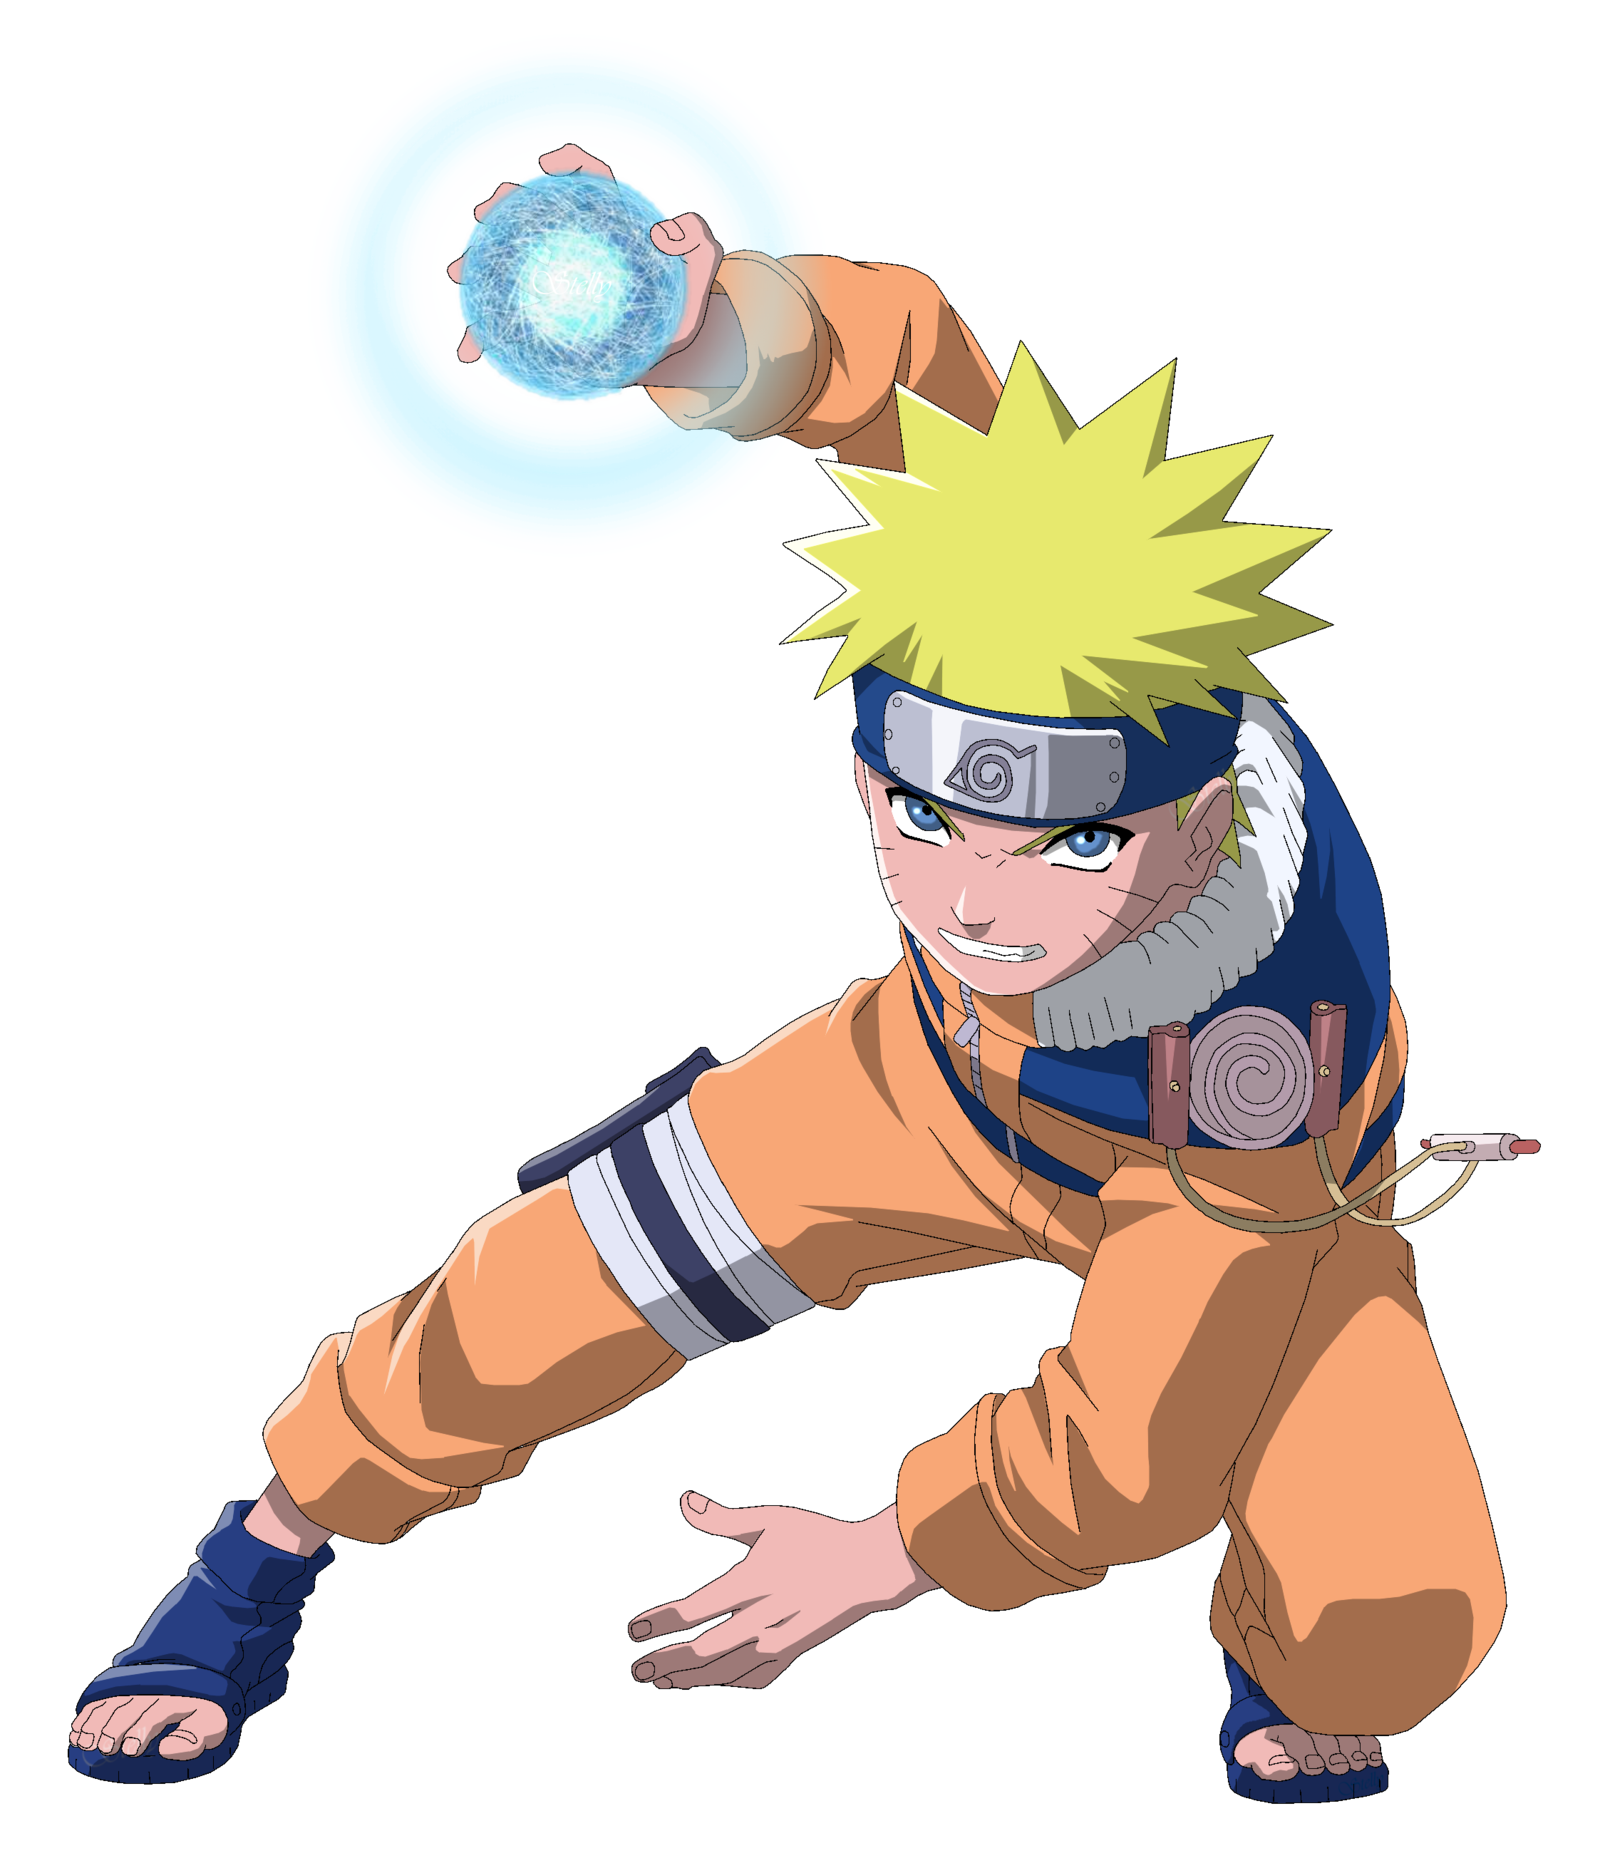 Naruto rasengan png. Image teen lineart colored